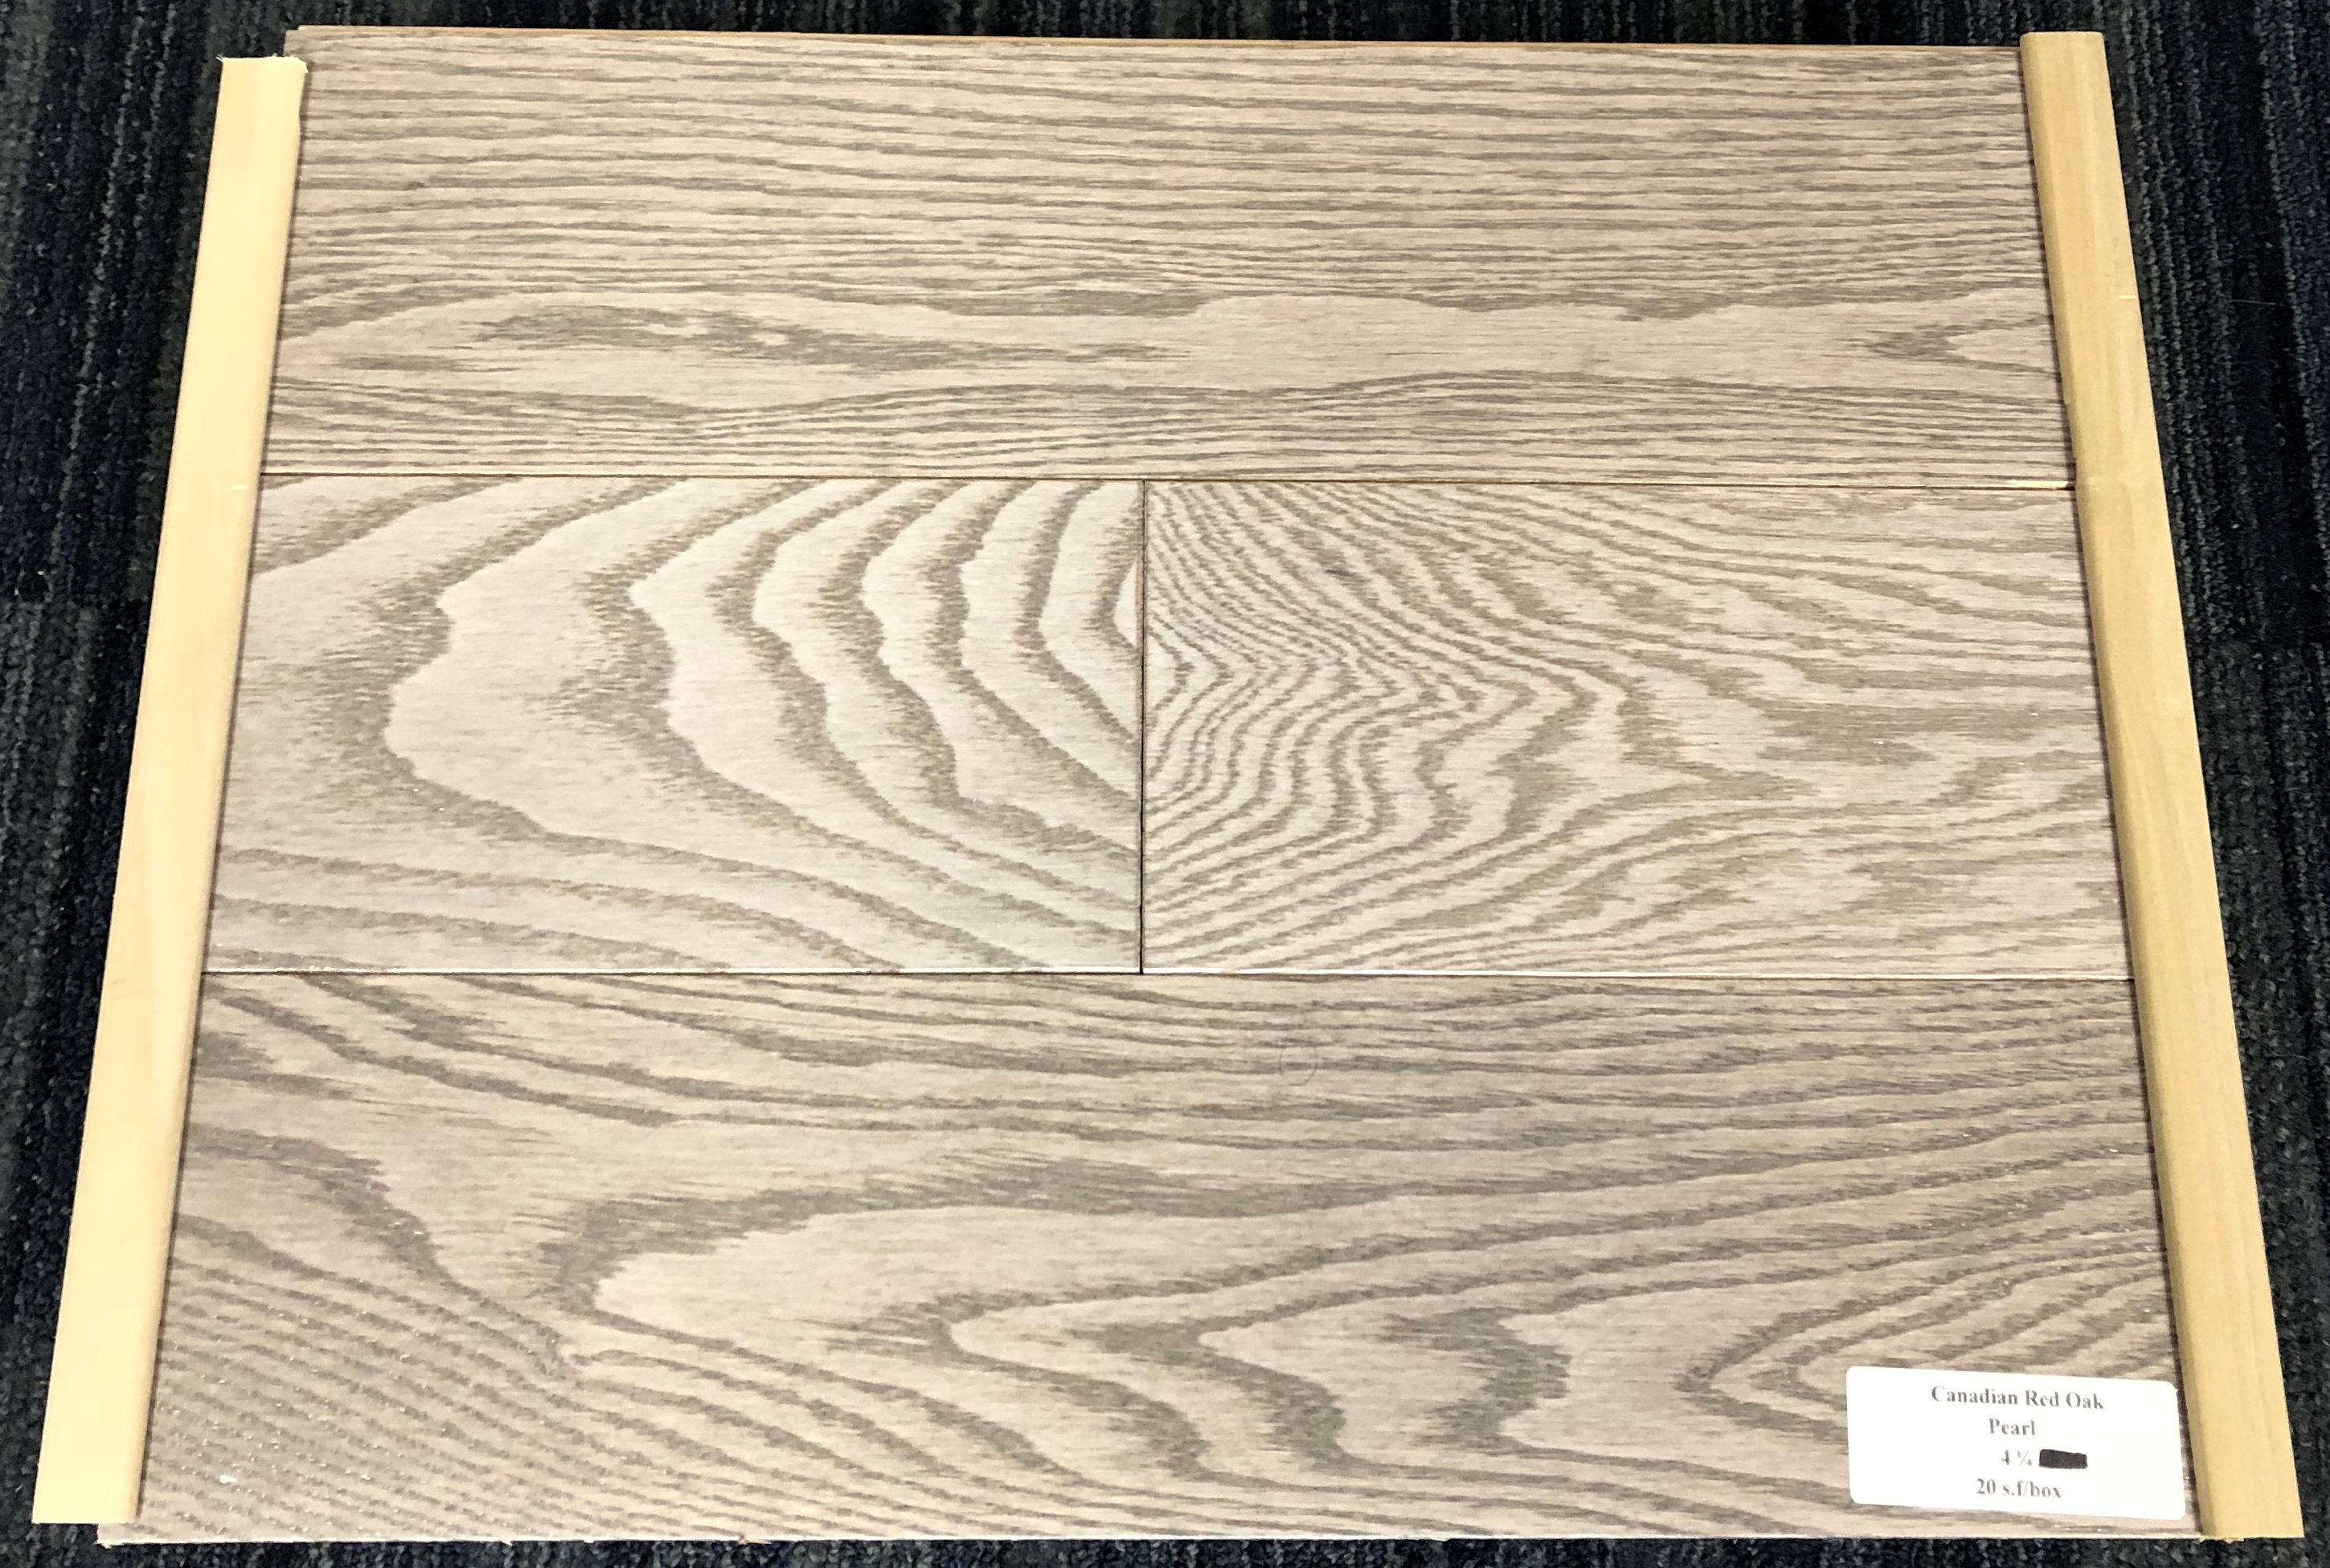 Pearl Wickham Red Oak Domestic Hardwood Flooring Image